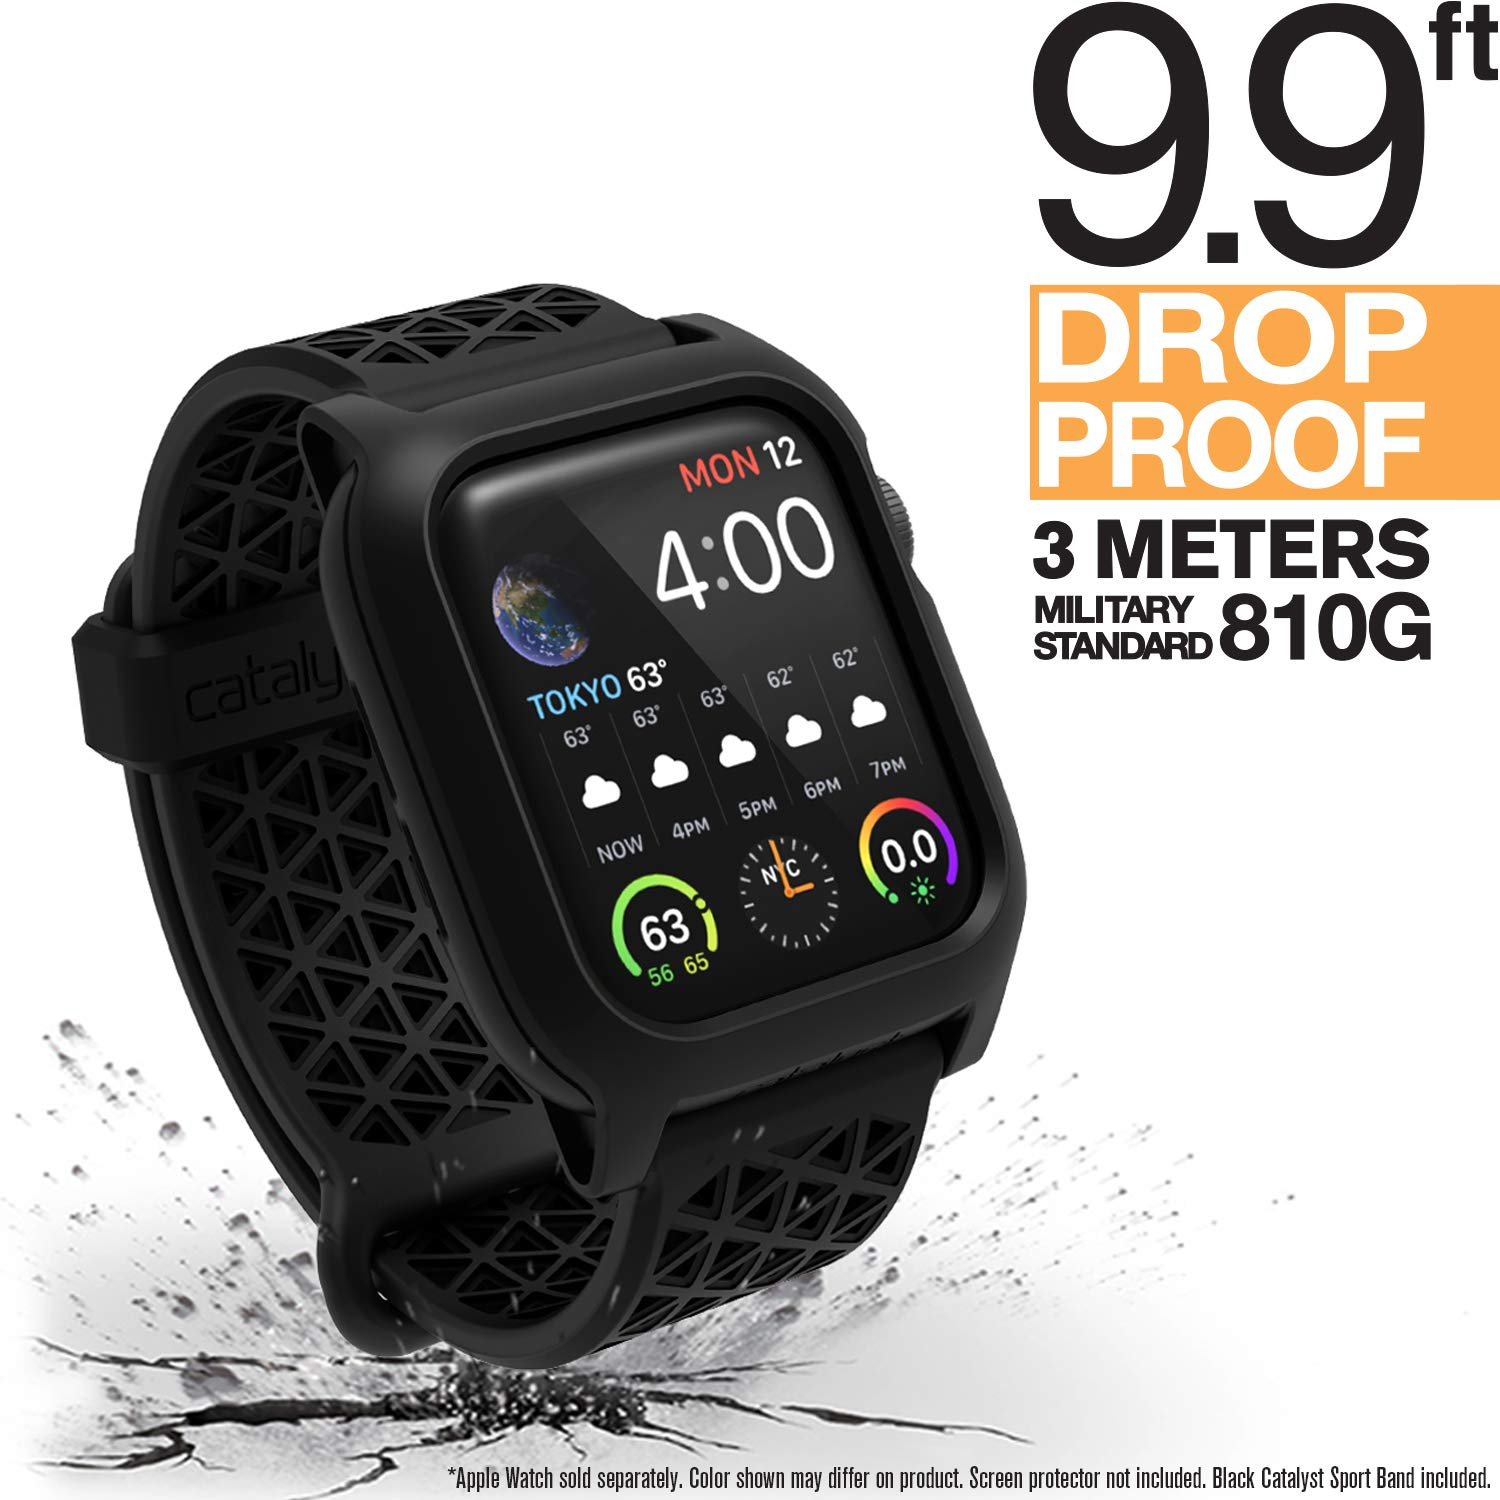 Catalyst Apple Watch Series 4 Impact Case 40mm Compatible with ECG and EKG Superior Sport Band Rugged iWatch Protective Case, Drop Proof Shock Proof Apple Watch Case, Stealth Black